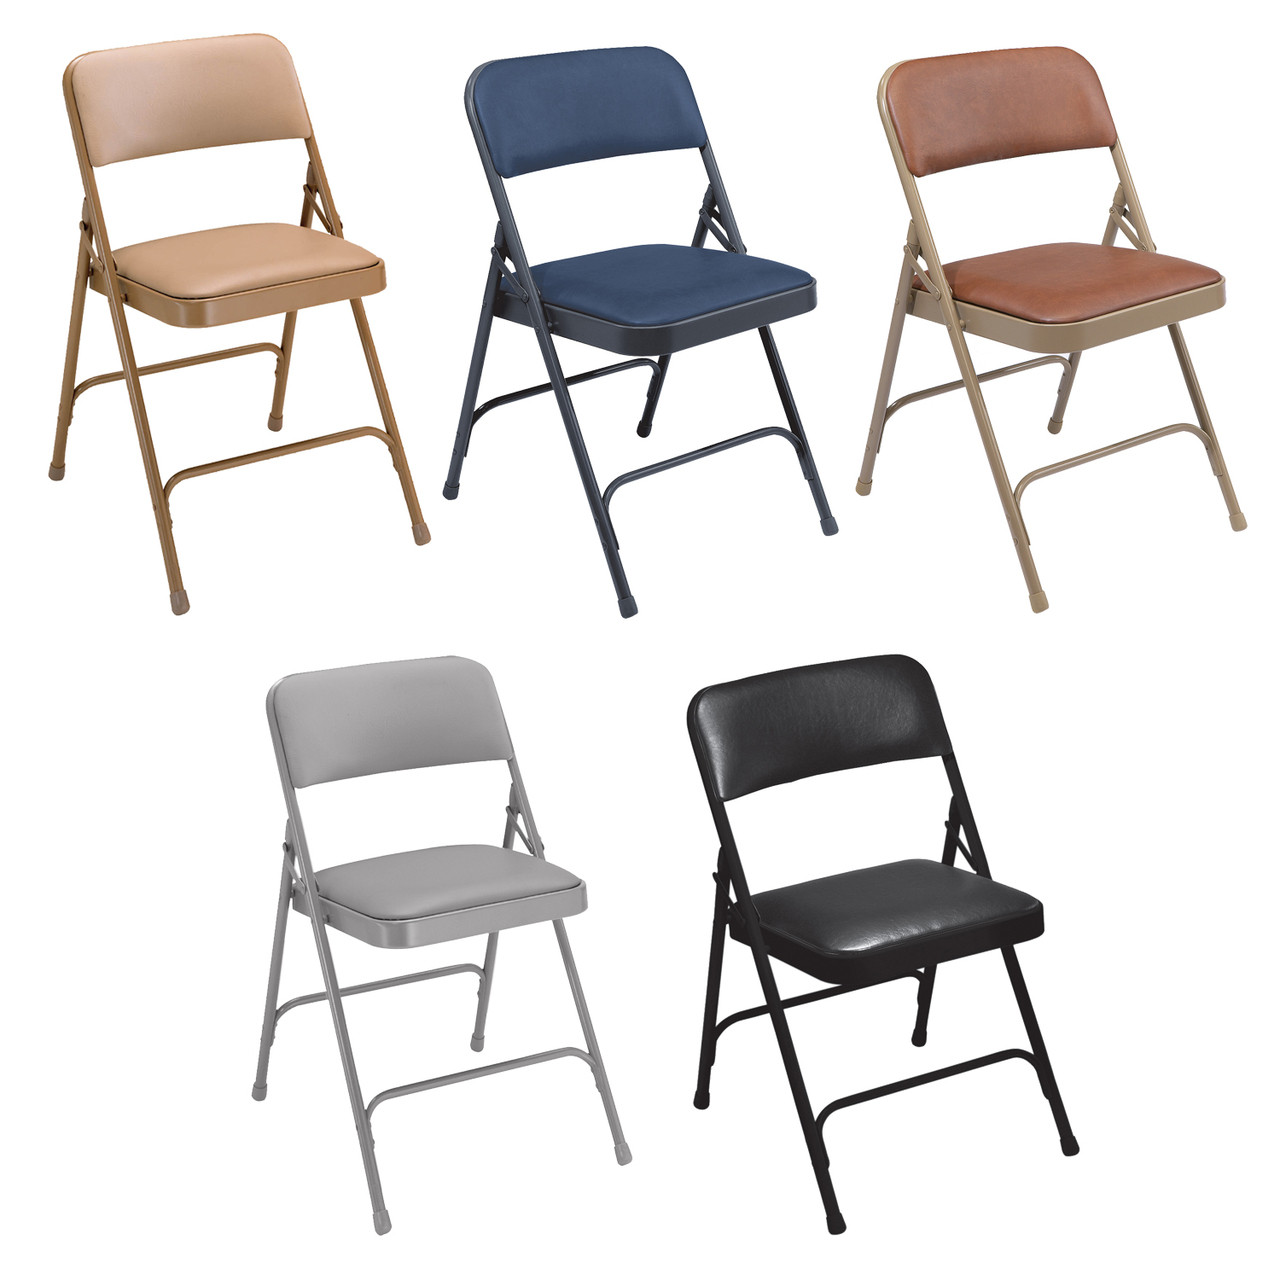 Marvelous Body Builder Vinyl Padded Folding Chair By National Public Seating 1200 Series Pabps2019 Chair Design Images Pabps2019Com